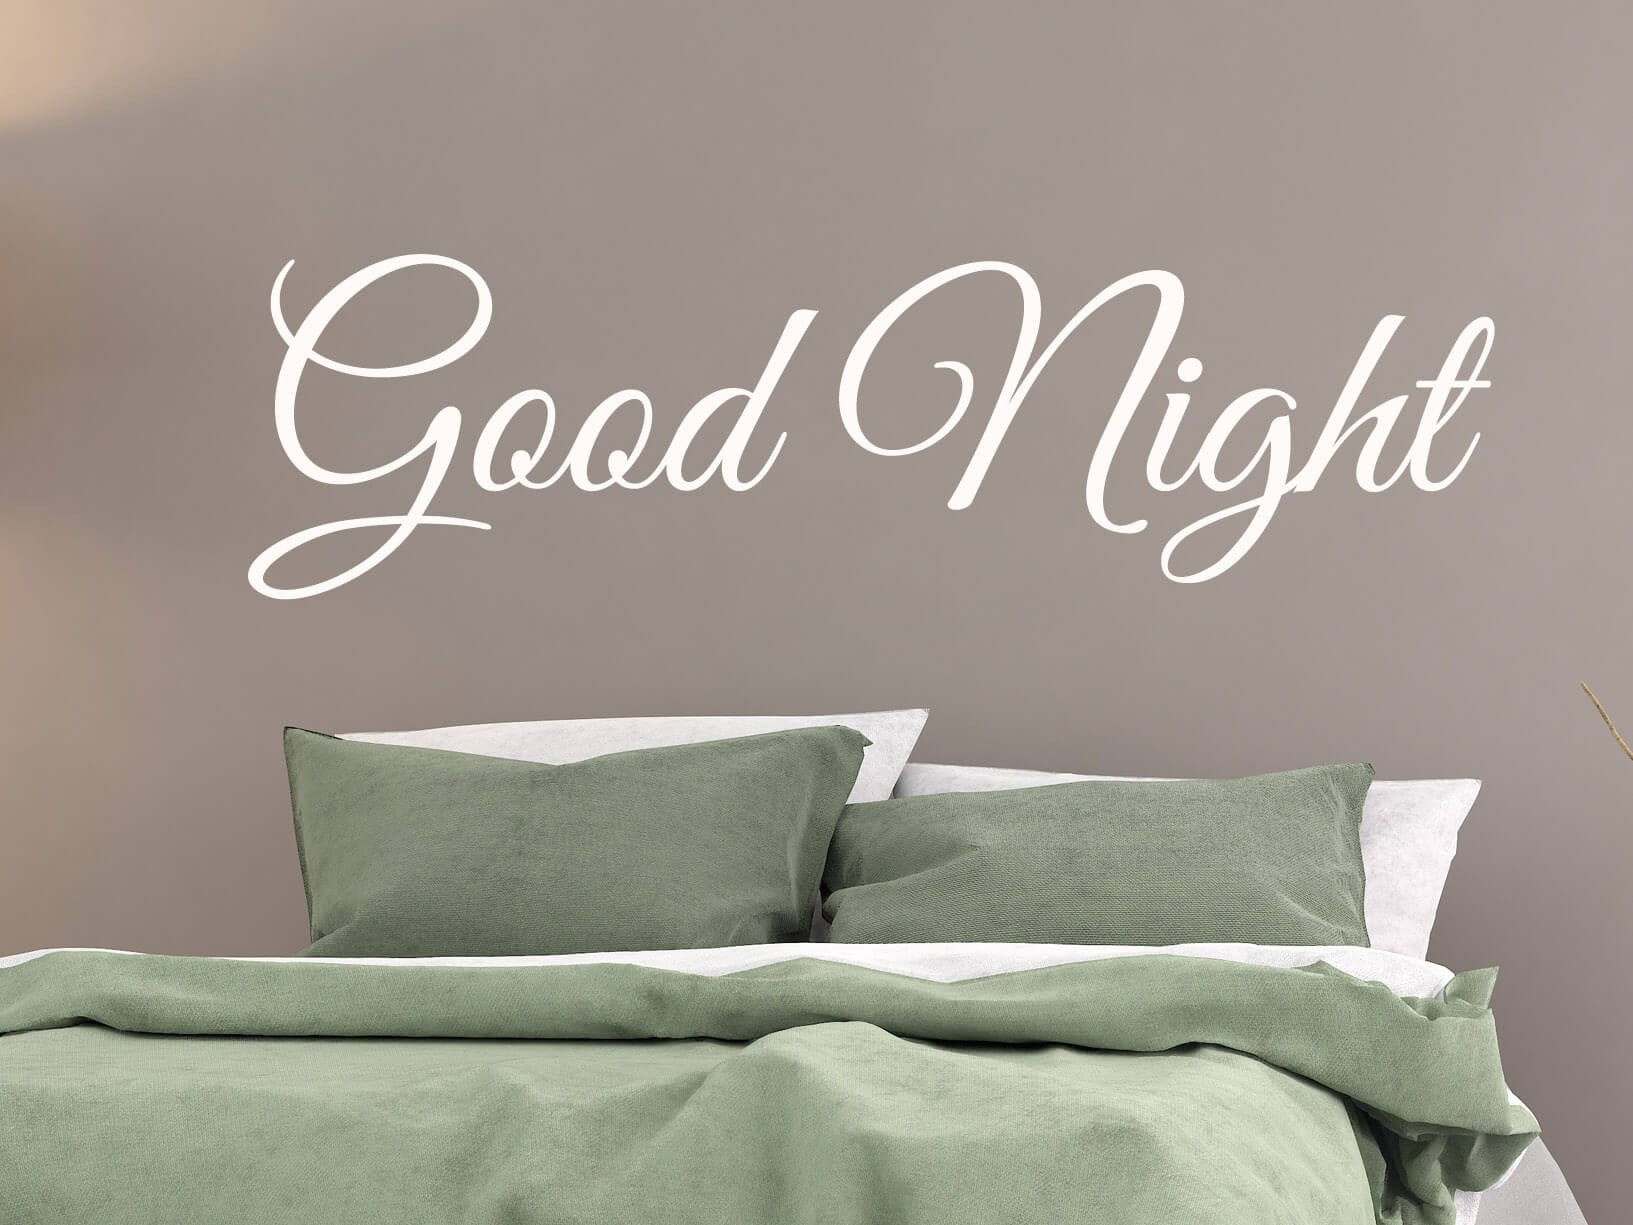 muursticker quotgood nightquot slaapkamer muurstickers